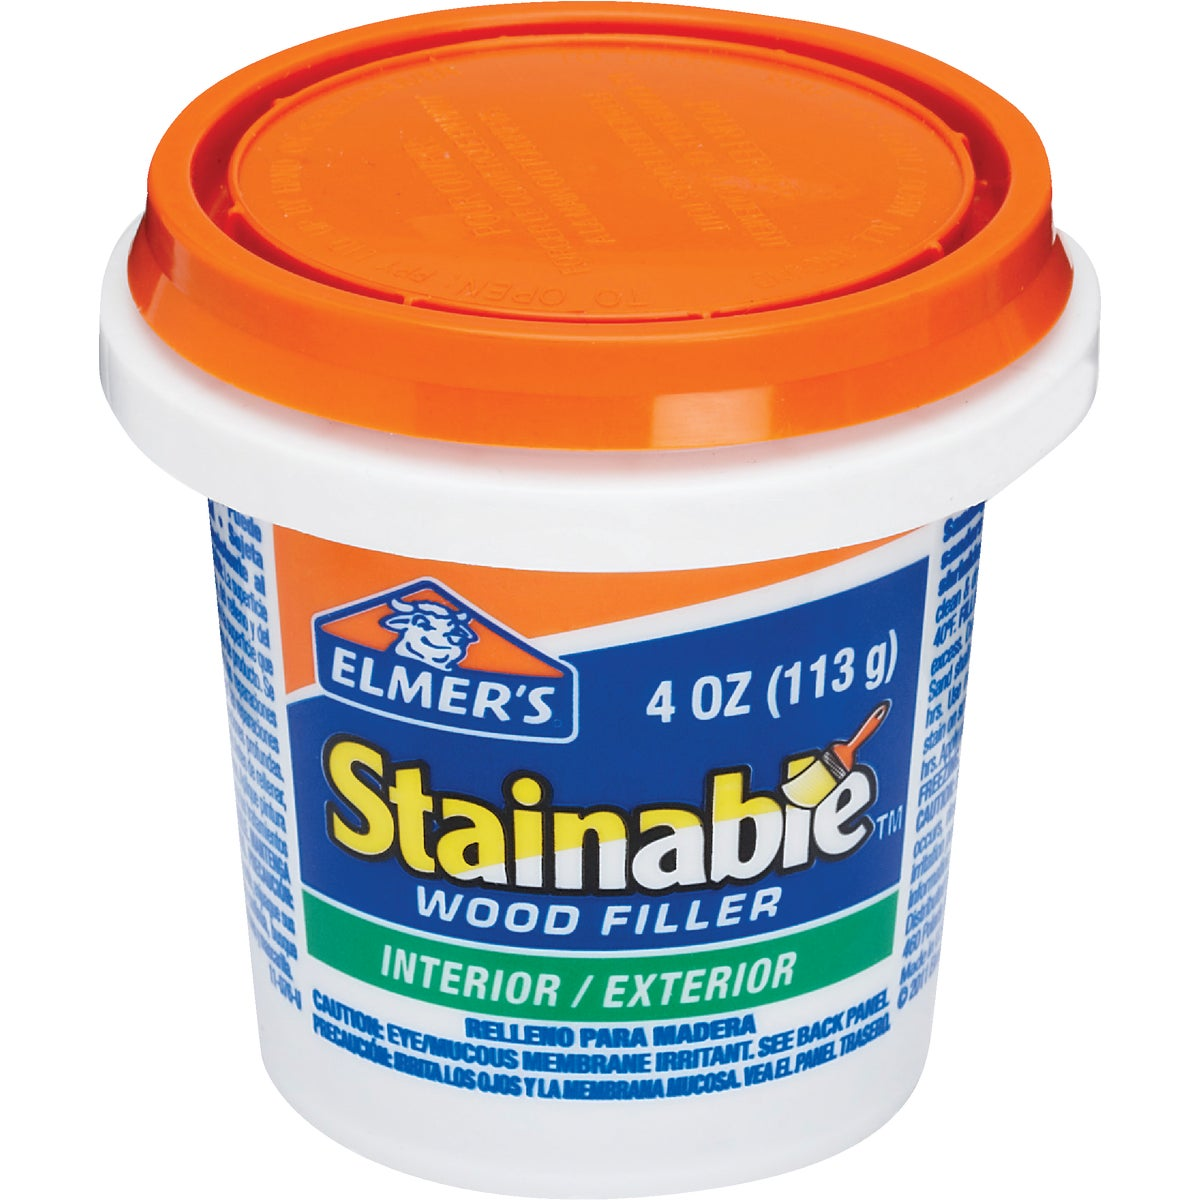 1/4PT INT/EX WOOD FILLER - E847D12 by Elmers Products Inc